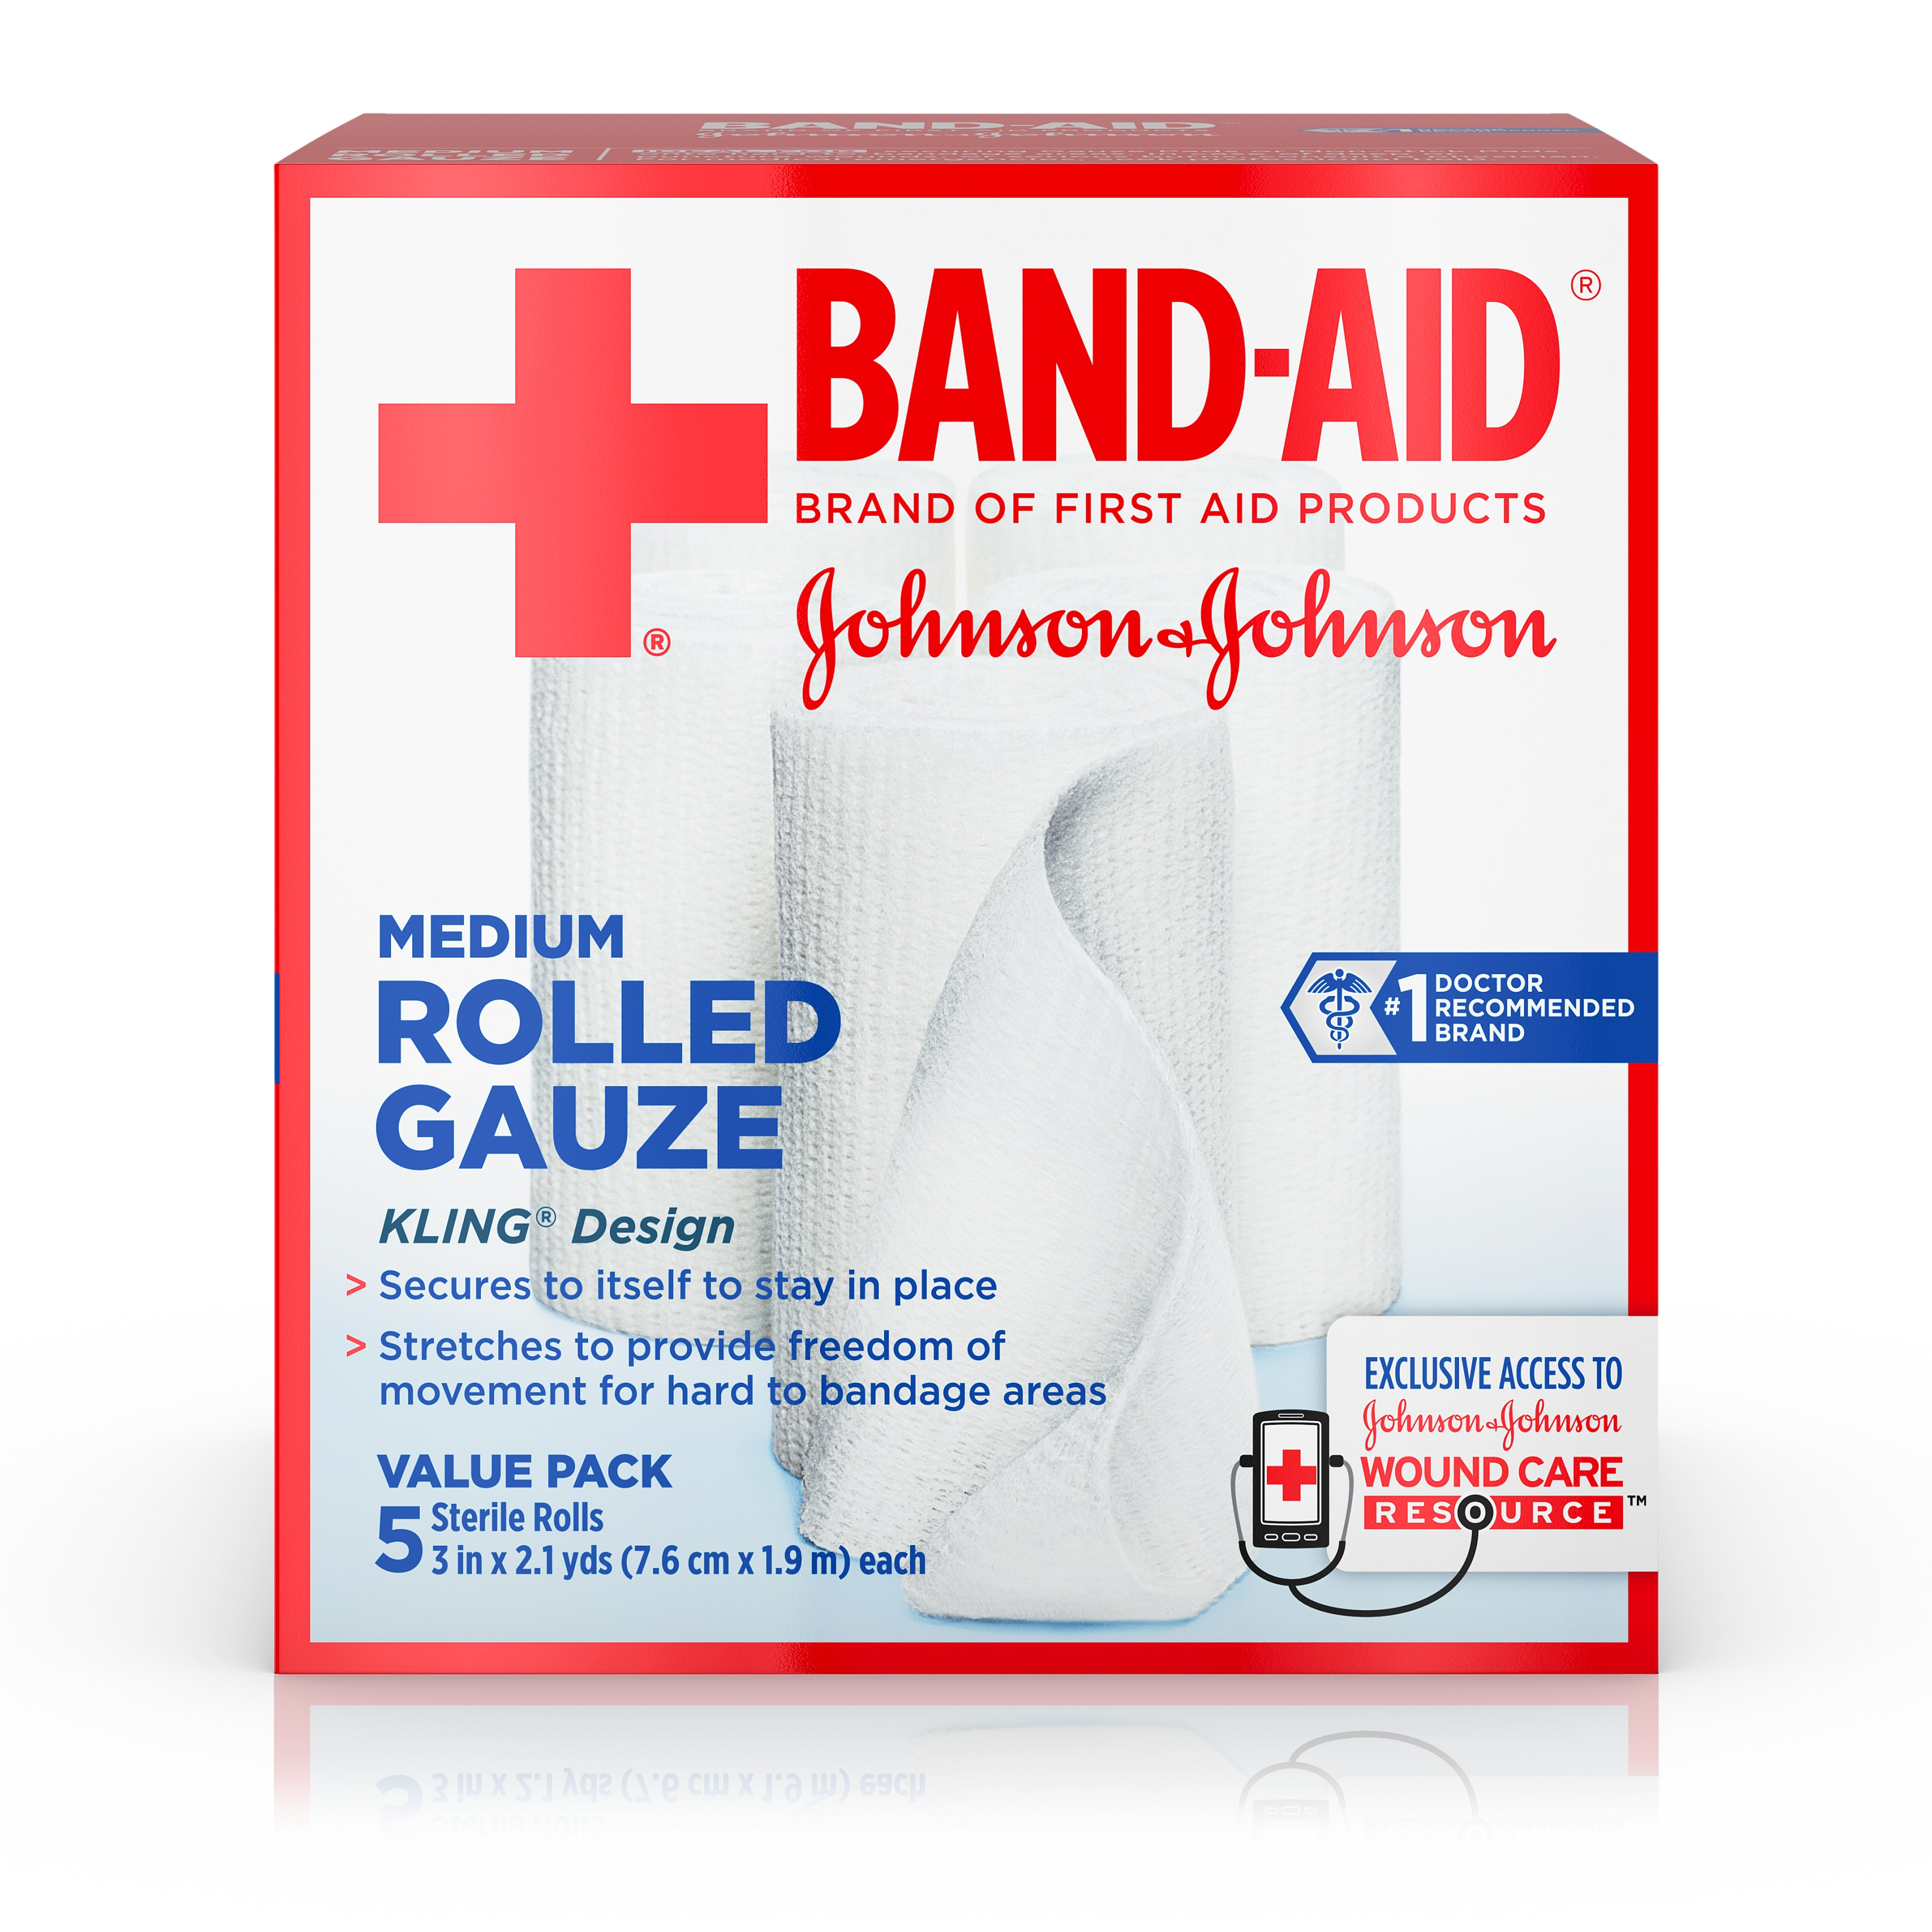 Band-Aid Brand Of First Aid Products Rolled Gauze, 3 Inches By 2.1 Yards, 5 Count Value Pack by Johnson & Johnson